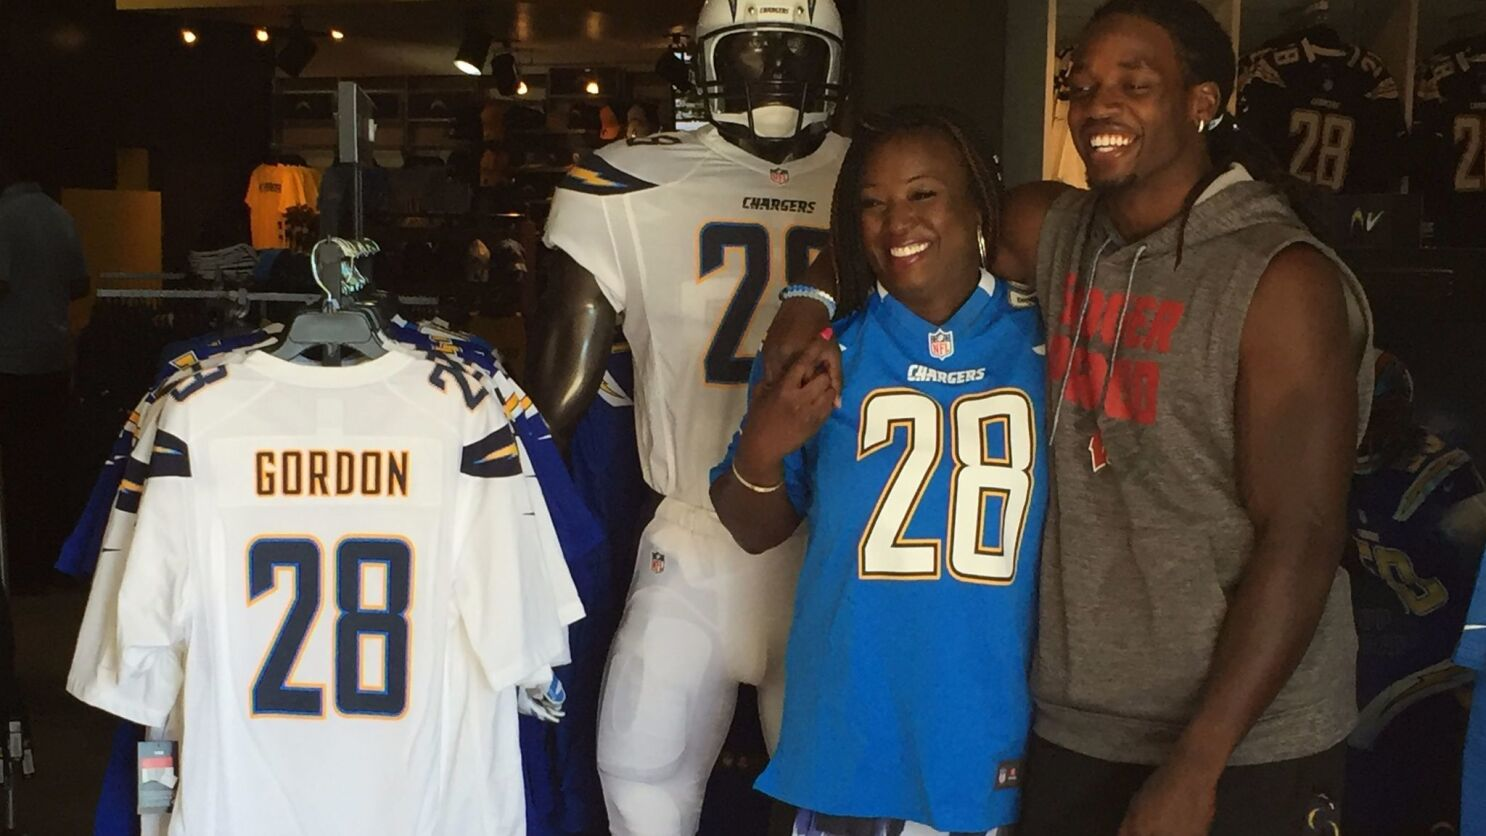 Melvin Gordon S Mom Suits Up For Son The San Diego Union Tribune